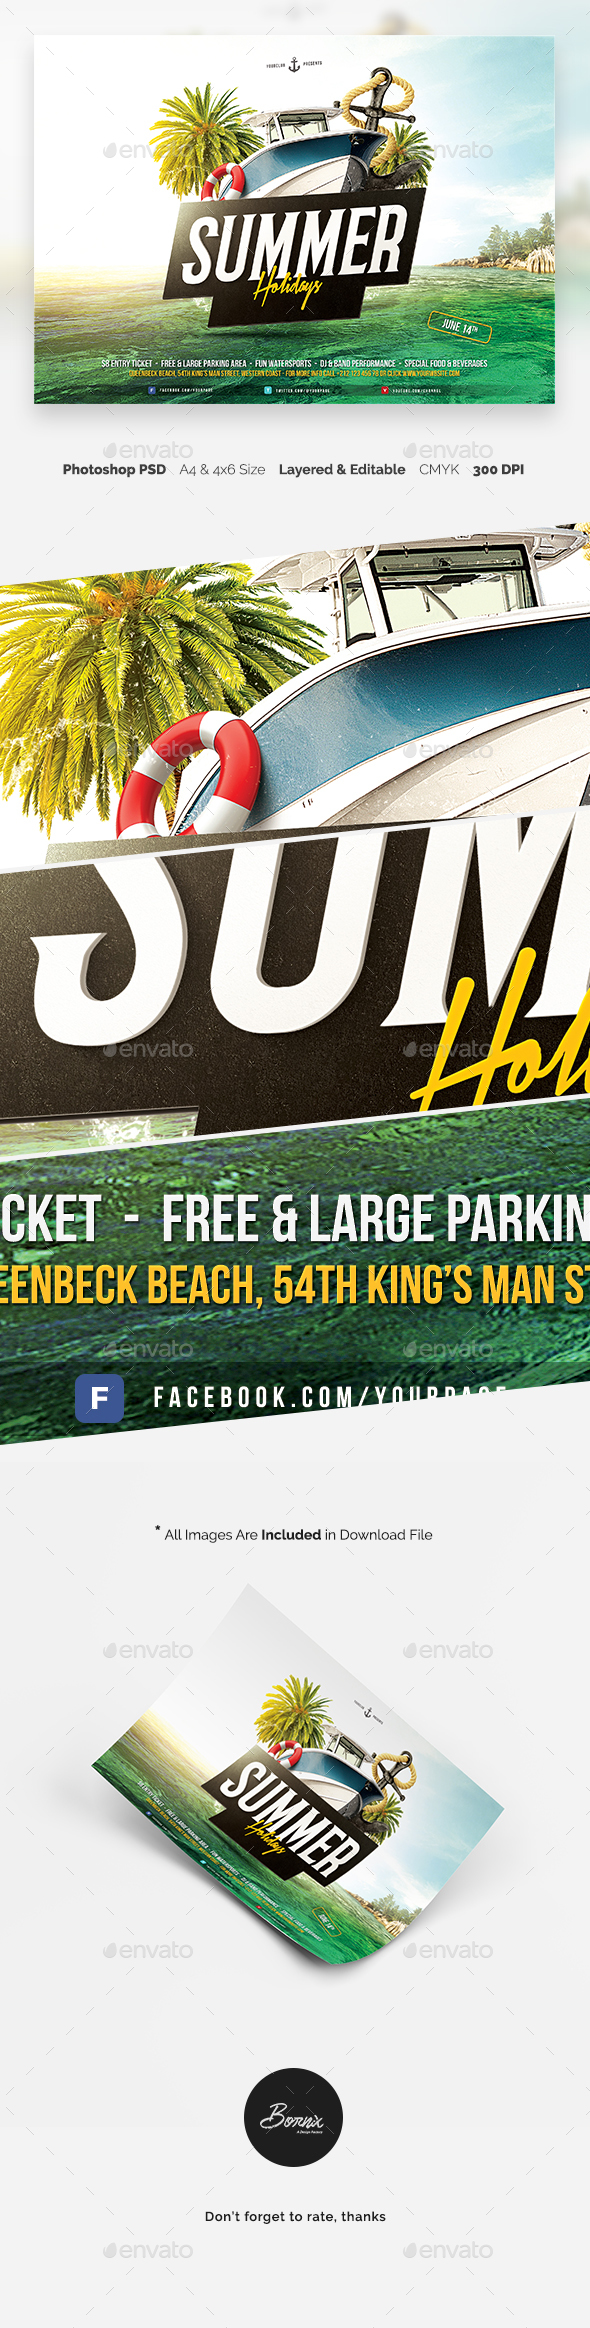 Summer Holidays Flyer Template